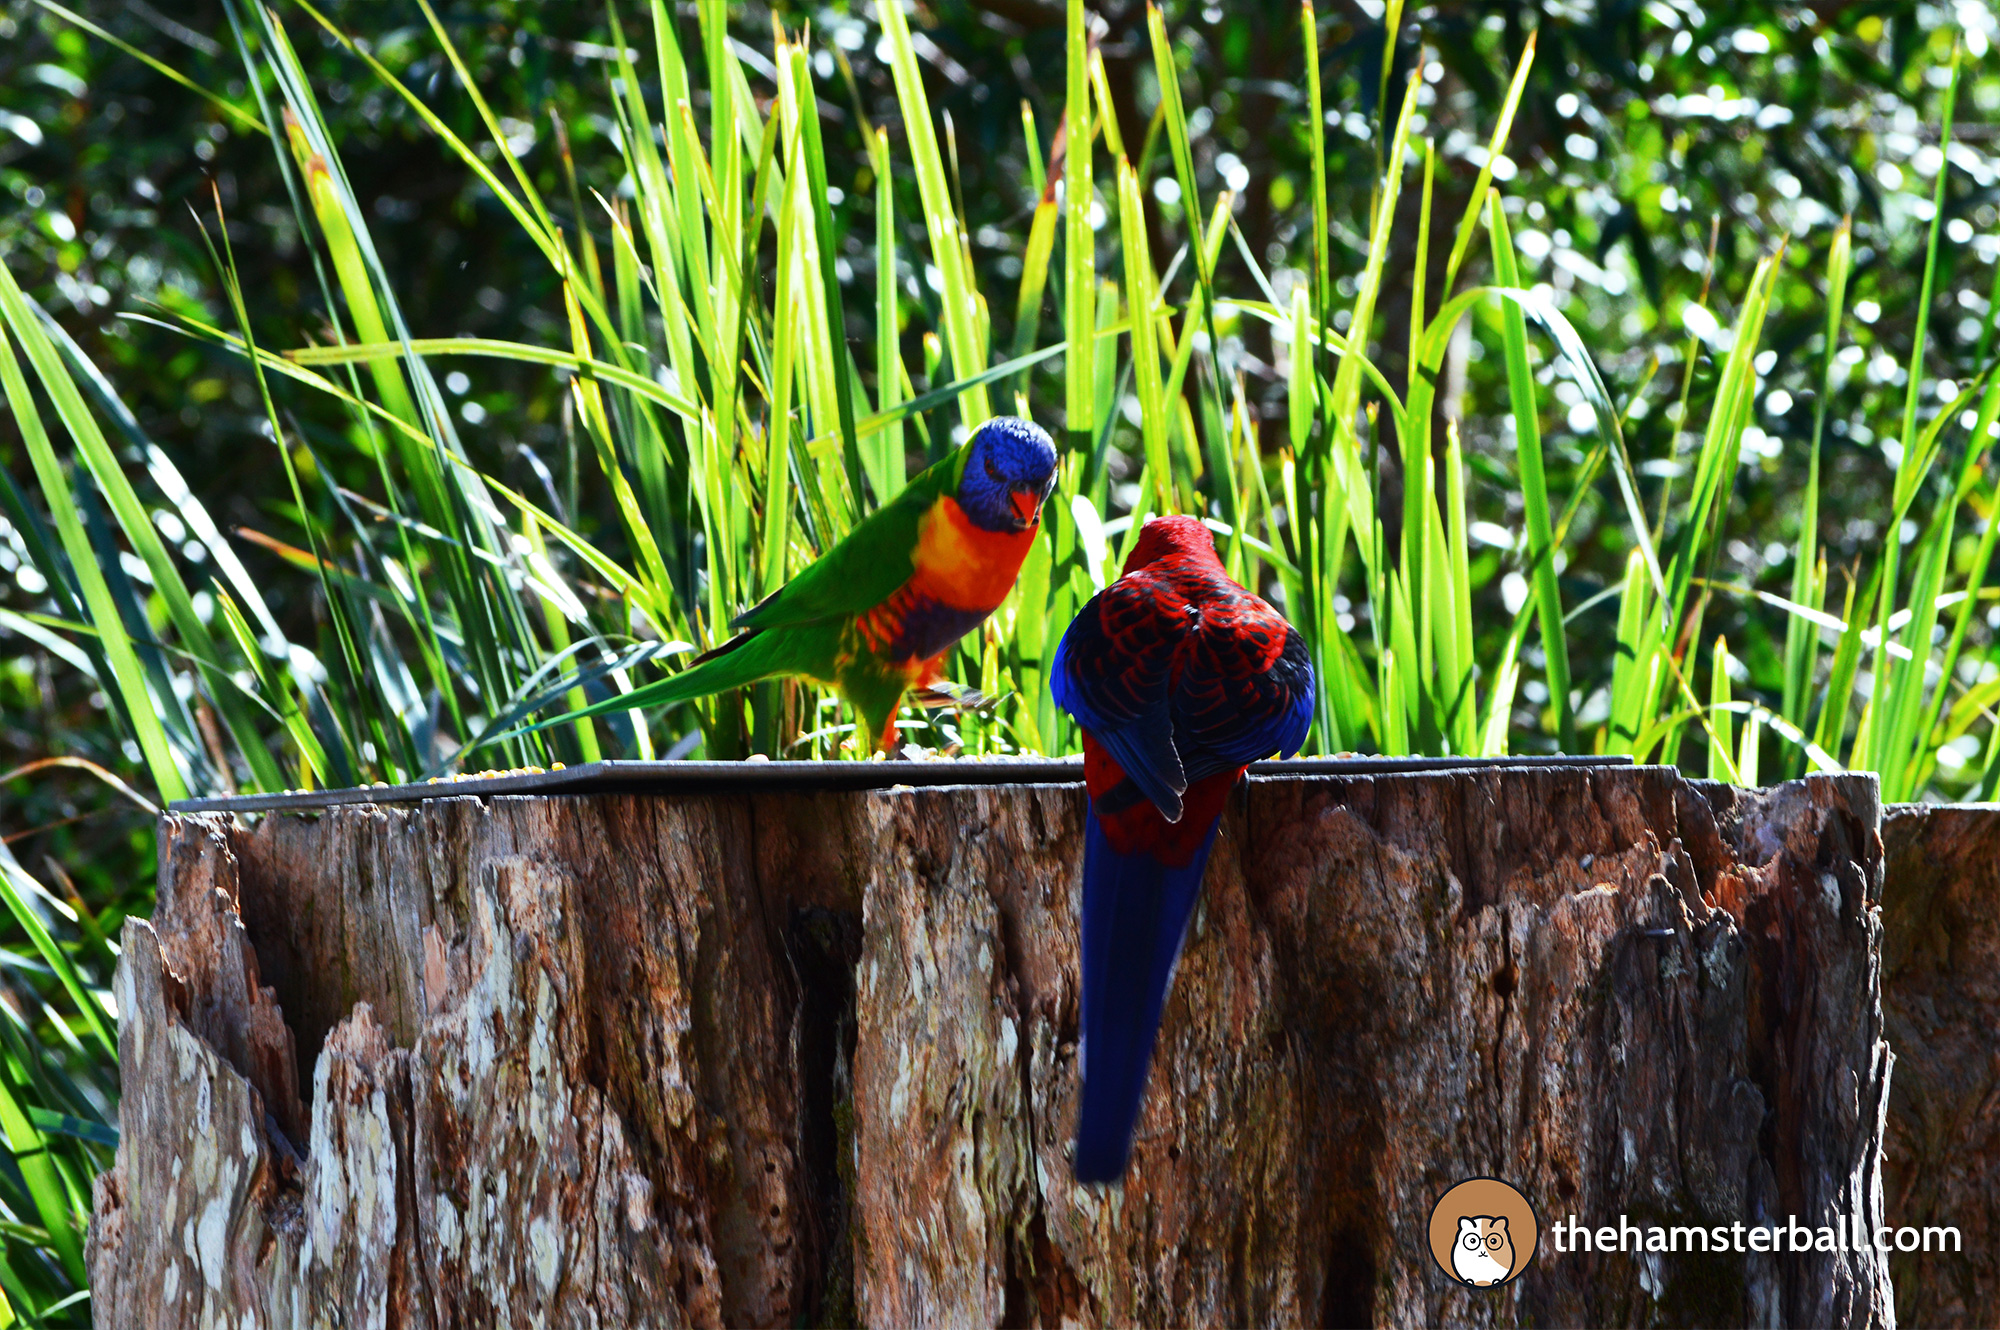 The Fudge Shop, Springbrook, cockatoos, environment, nature, crimson rosella, pale headed rosella, rainbow lorikeet